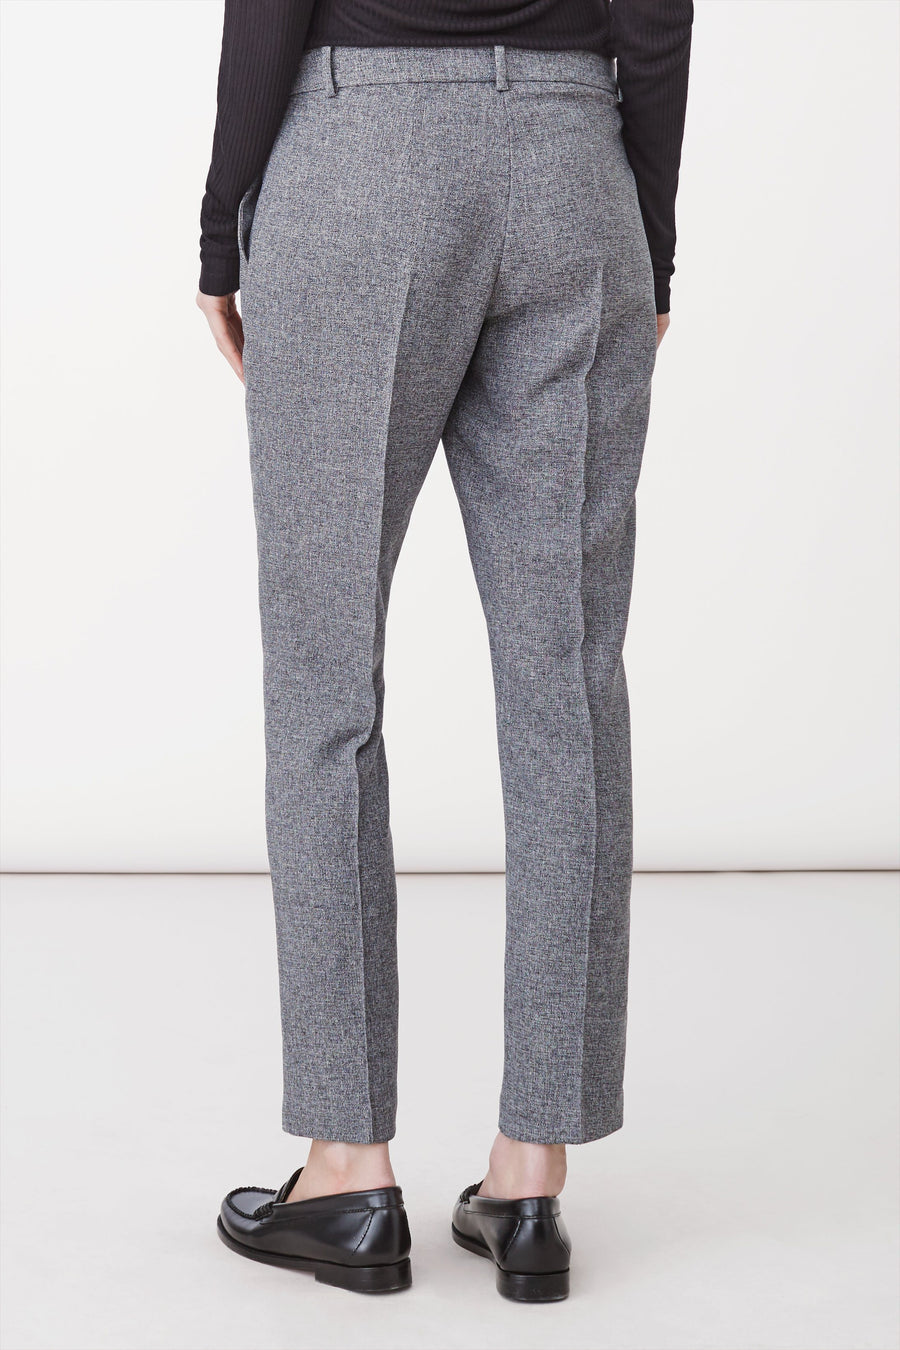 BLEECKER TROUSERS - GREY MELANGE Trousers Stylein